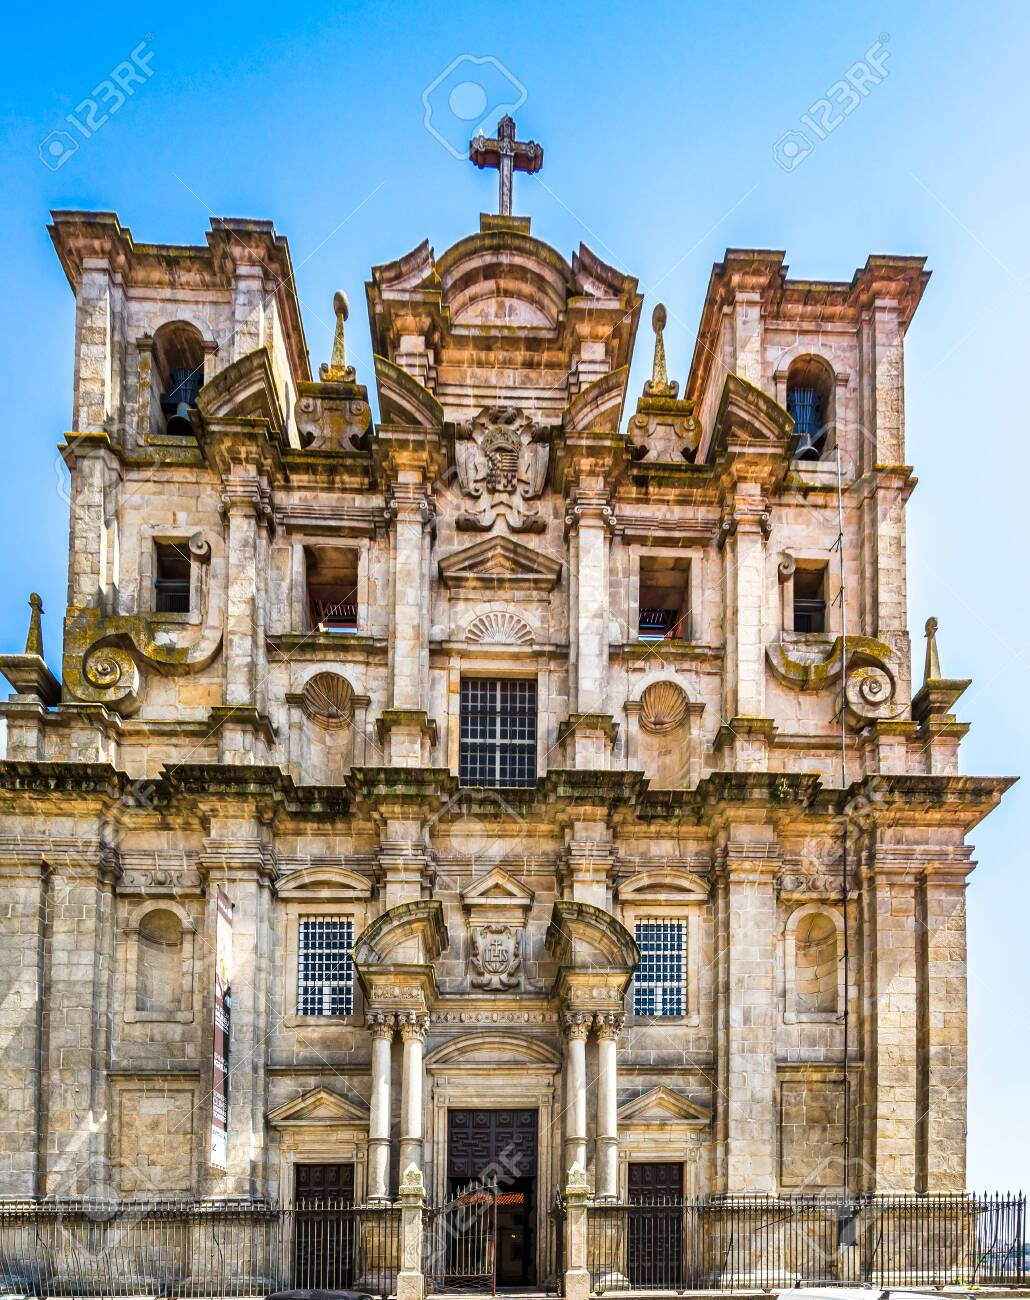 View on Facade Of Sao Lourenco Saint Lawrence Church and View Of The City Of Porto - 144070058